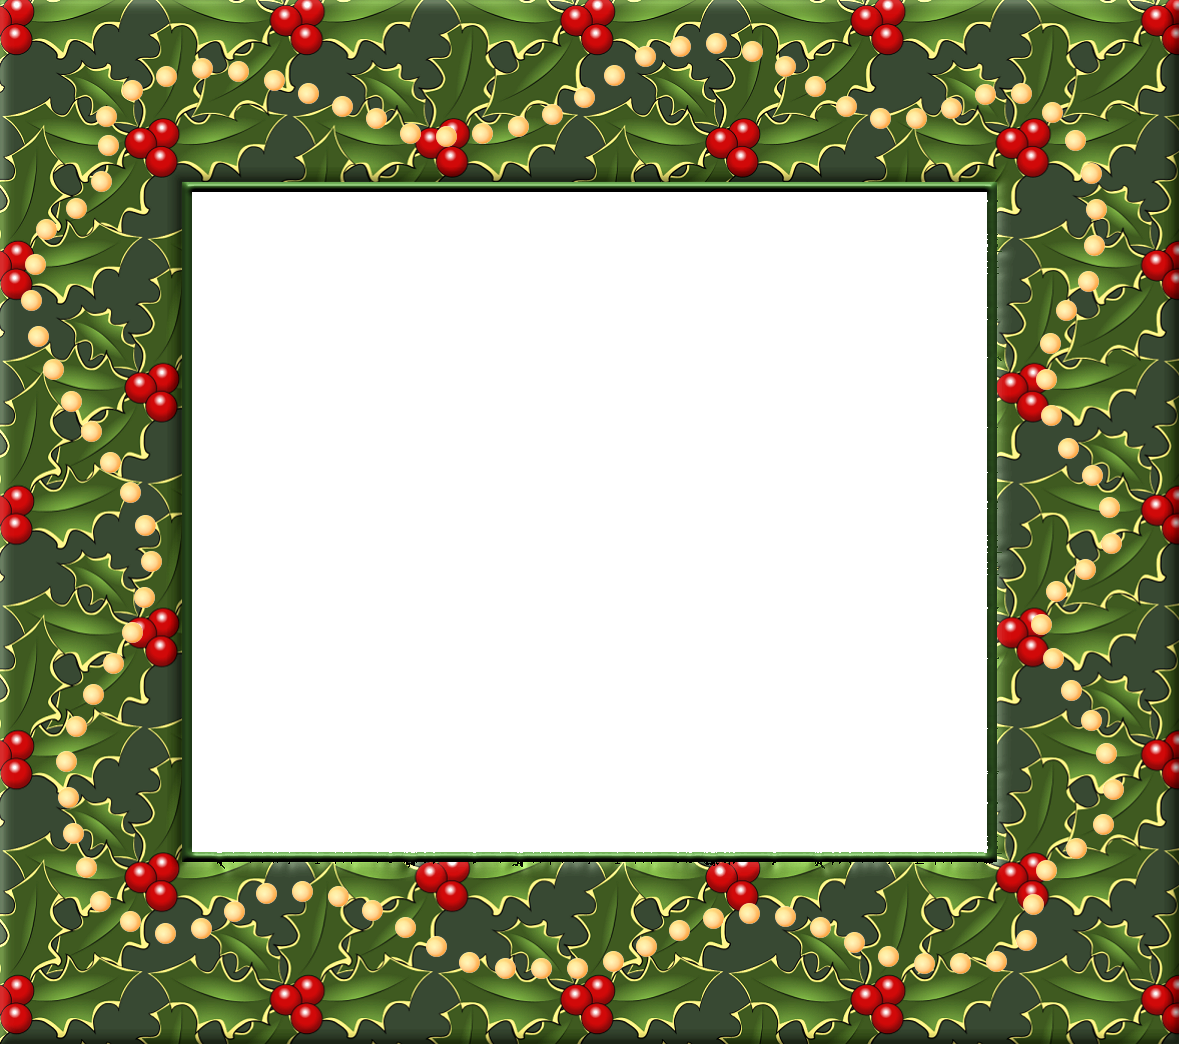 Christmas Borders And Frames Png image #30323